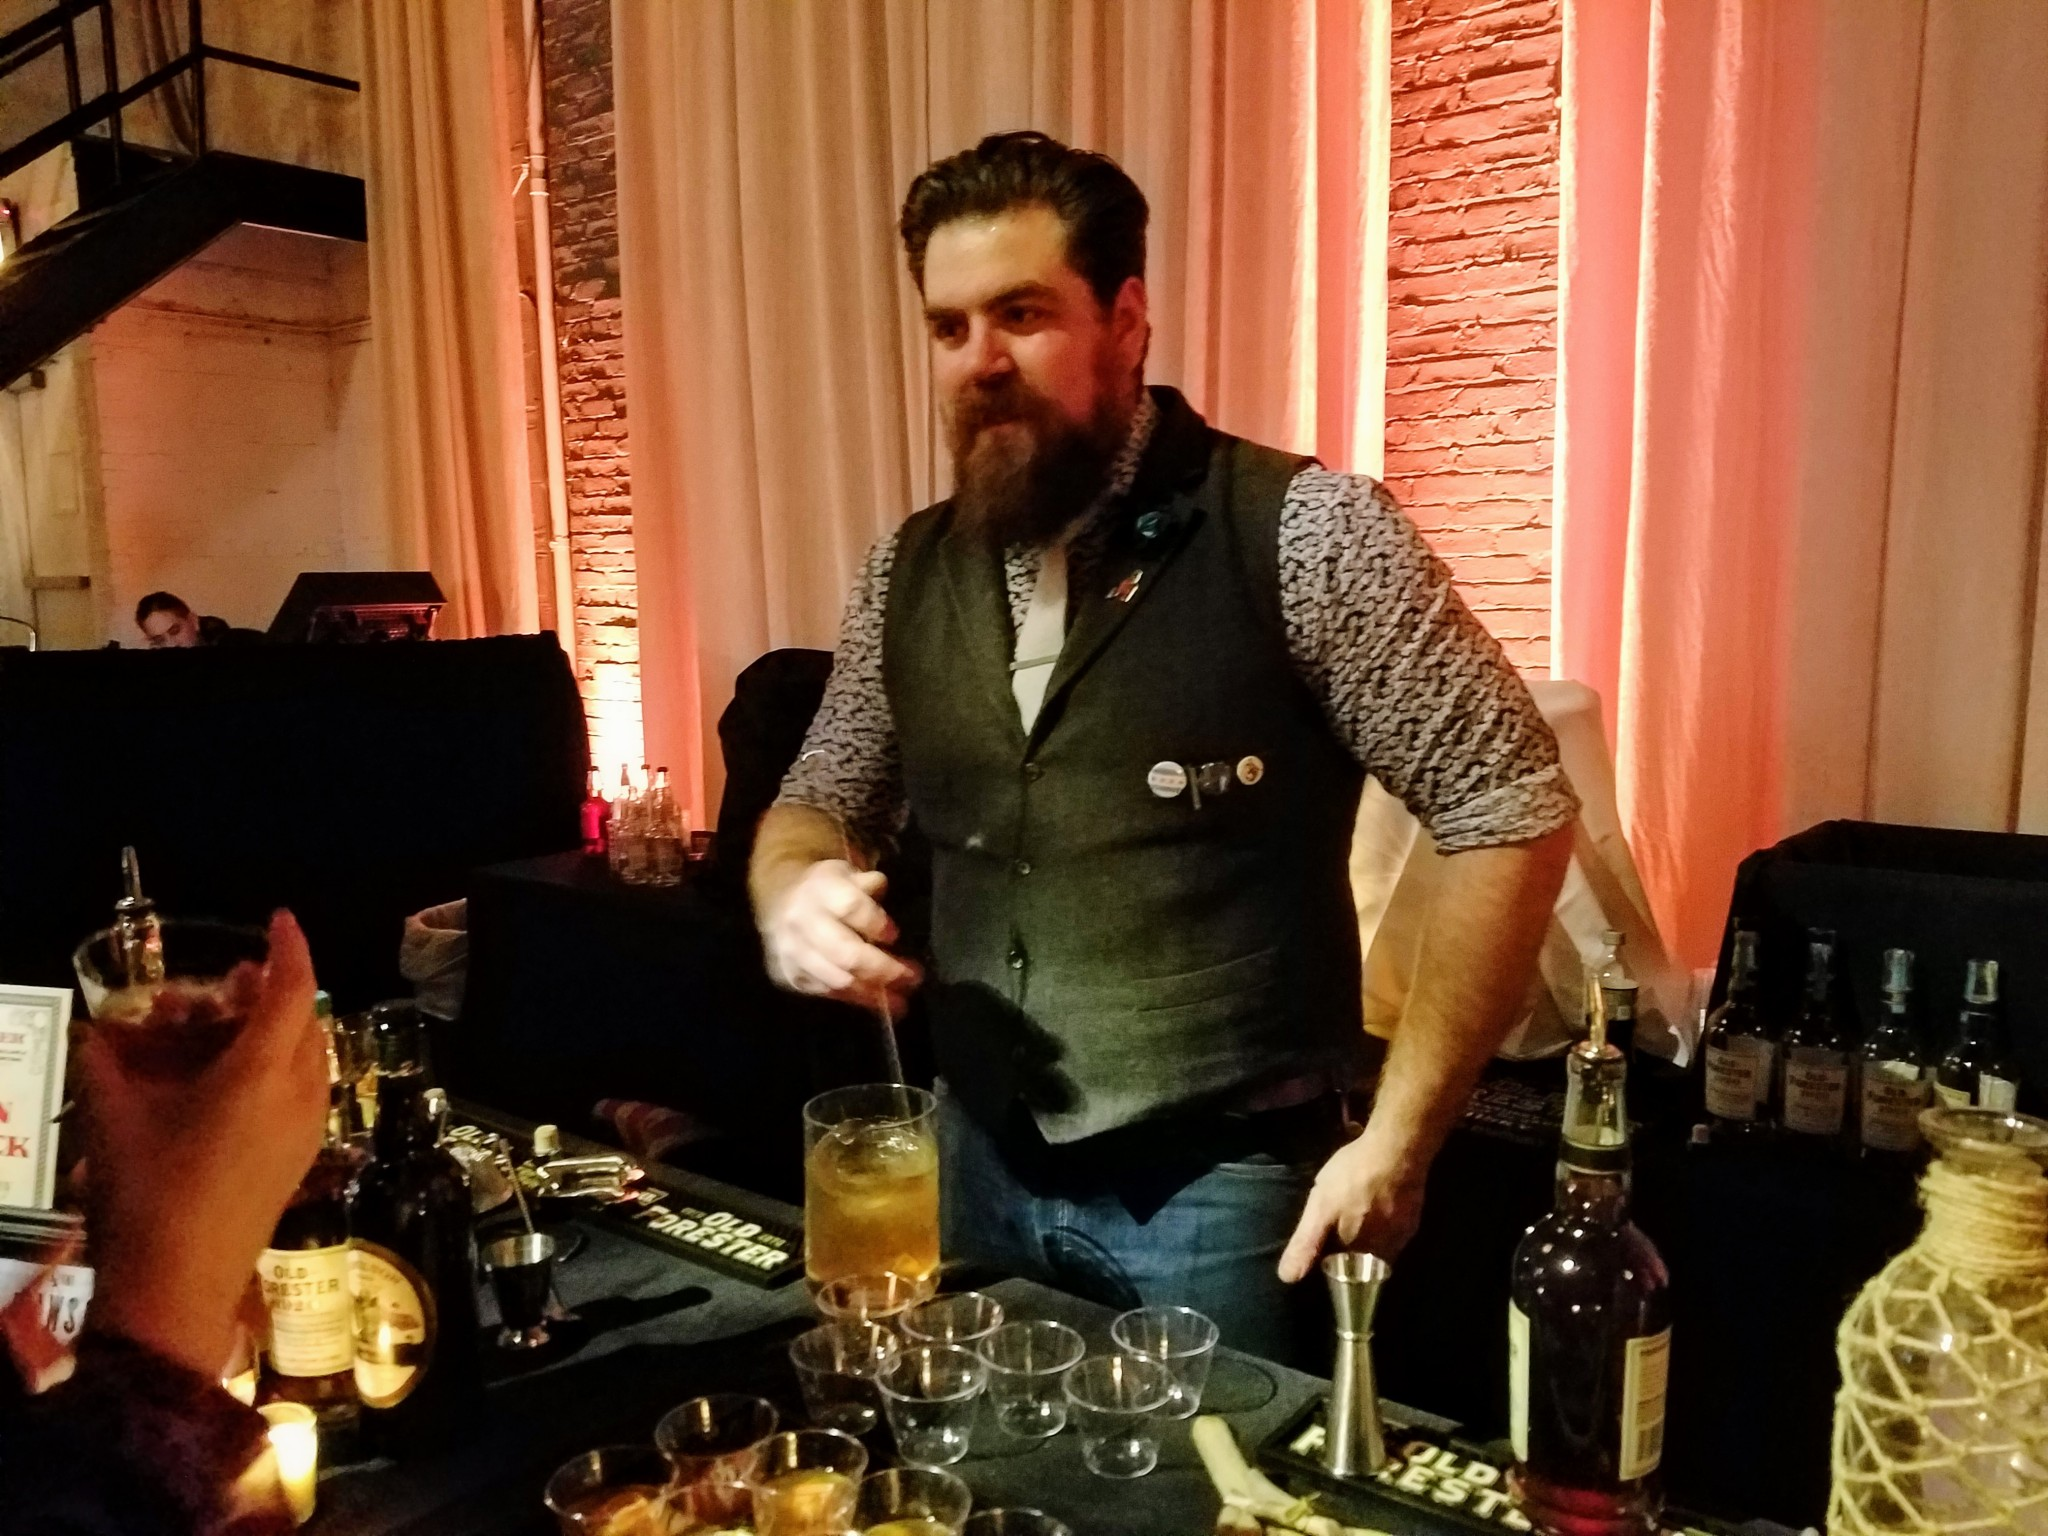 The Dawson's Aaron Pollack working on 'The Olde Dinghy'. Old Forester 1920 Prohibition Style.